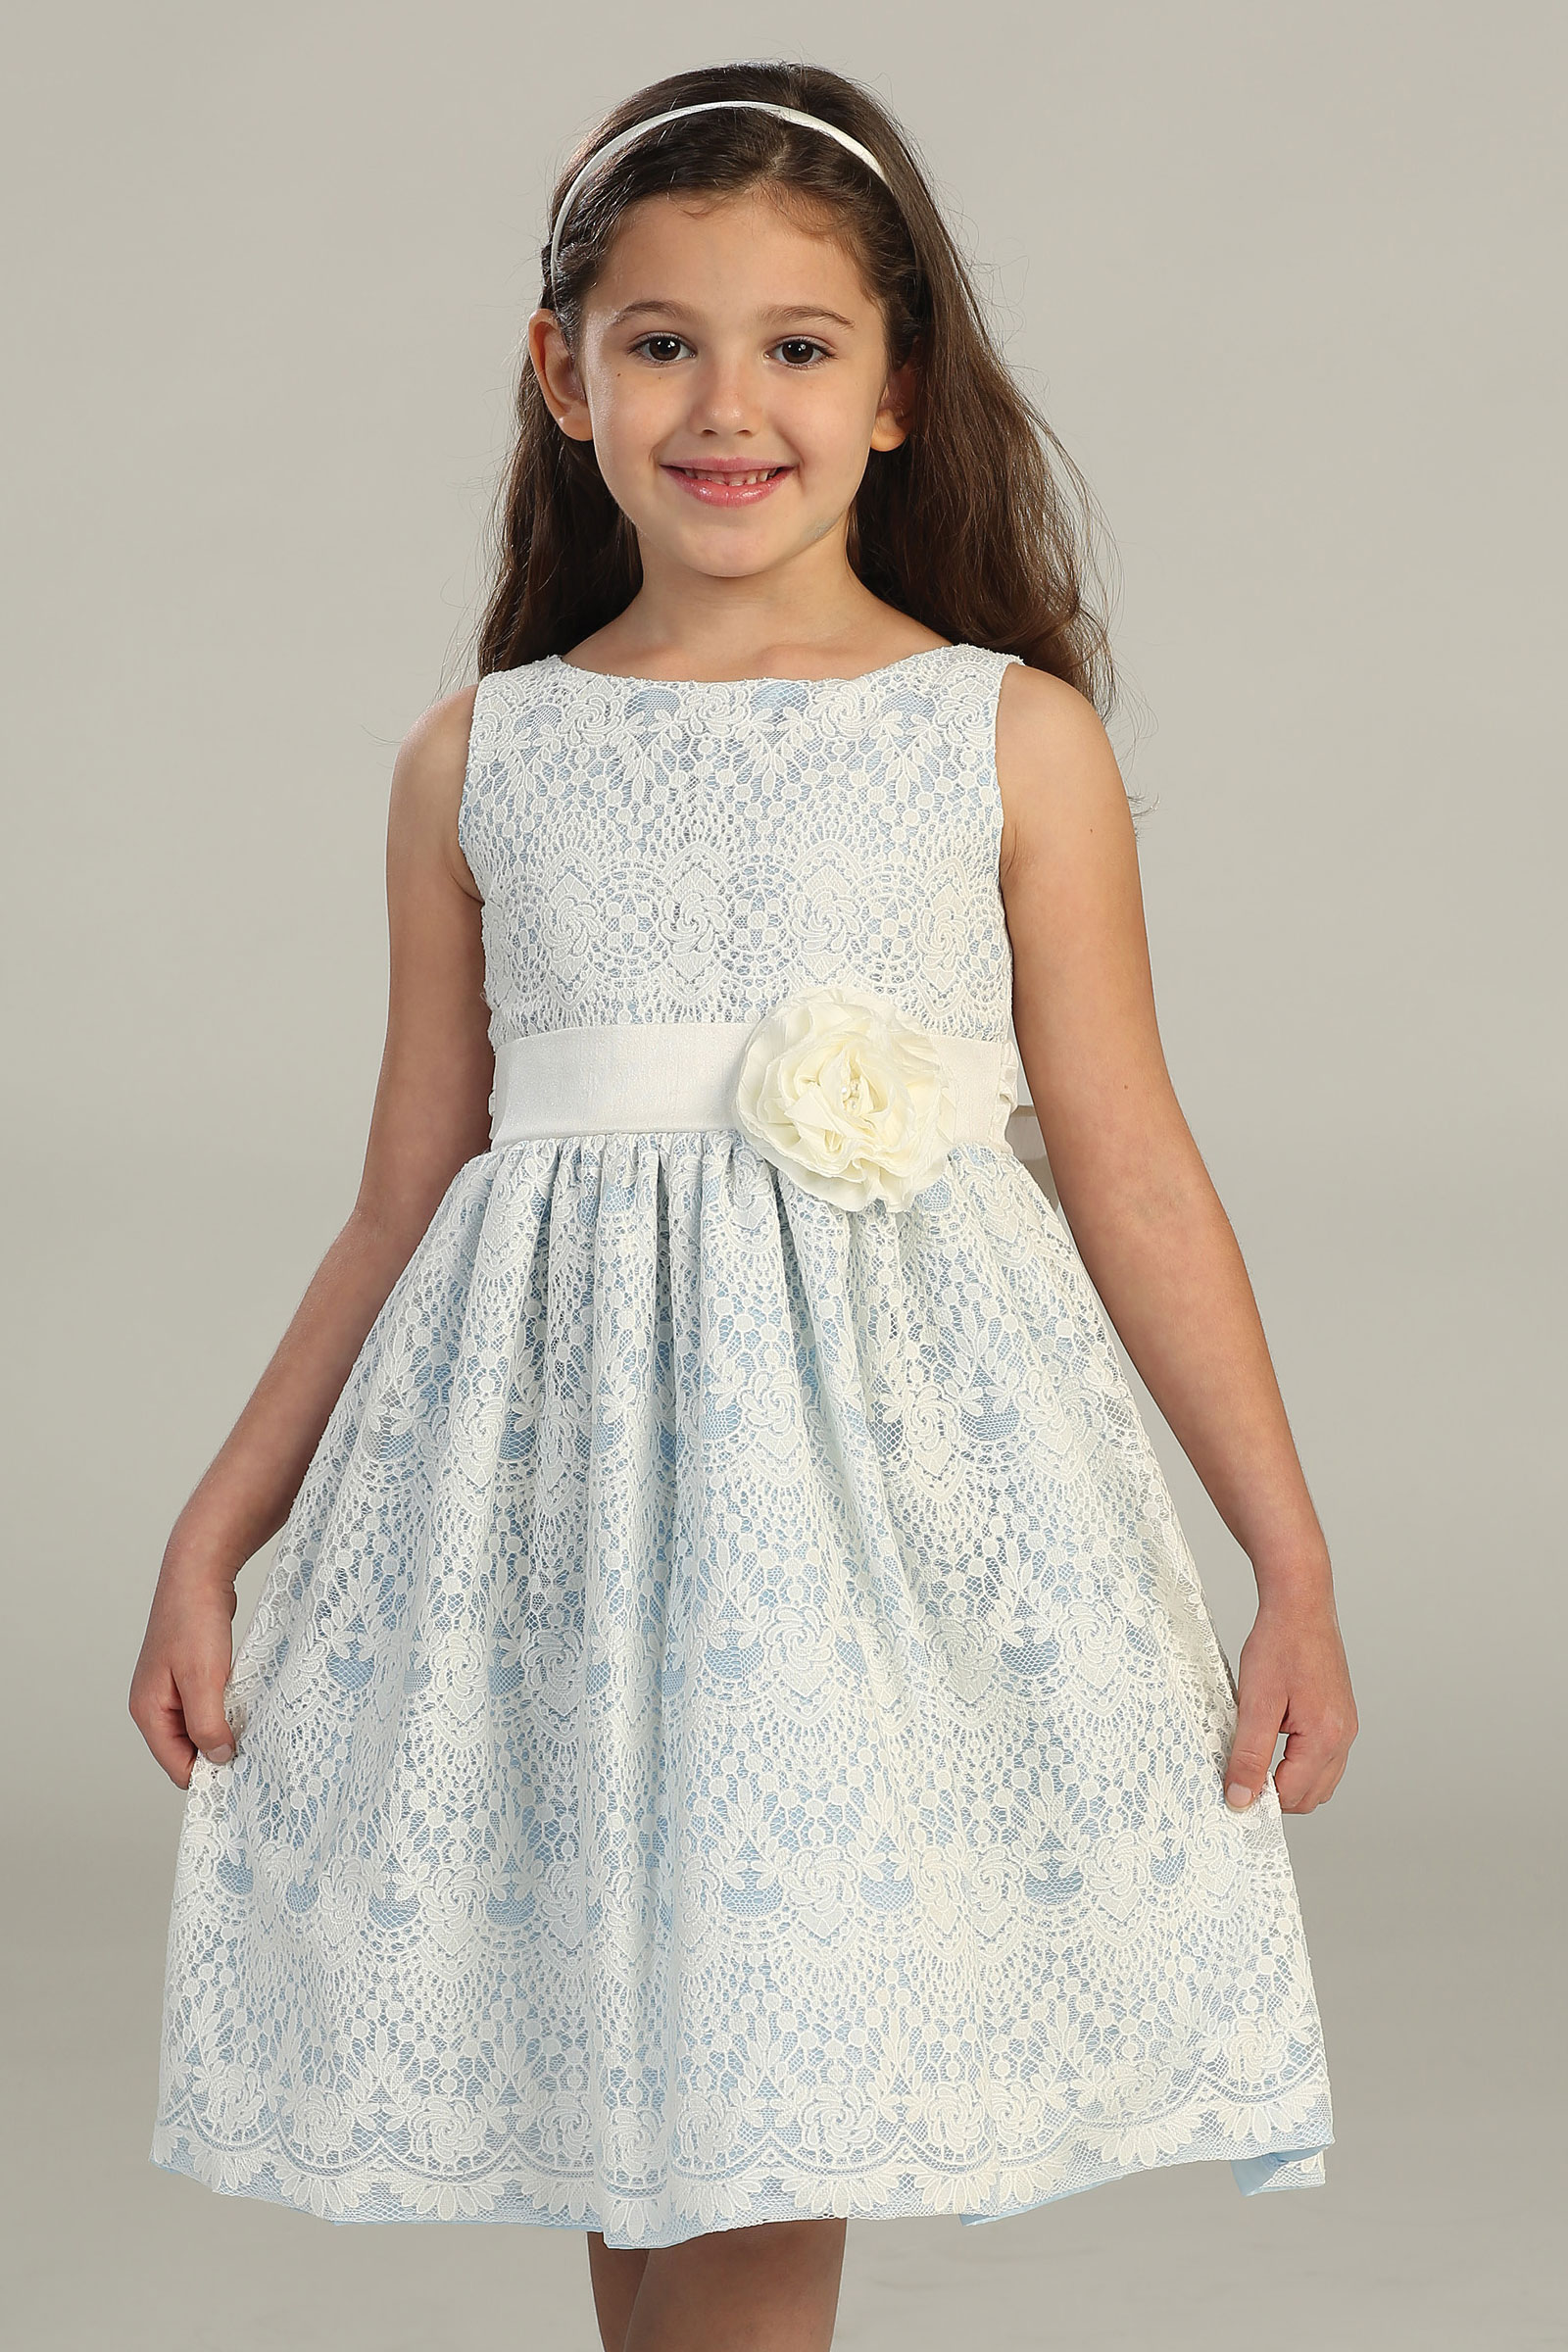 SK 437LB Girls Dress Style 437 Sleeveless Lace Dress See All Dresses F